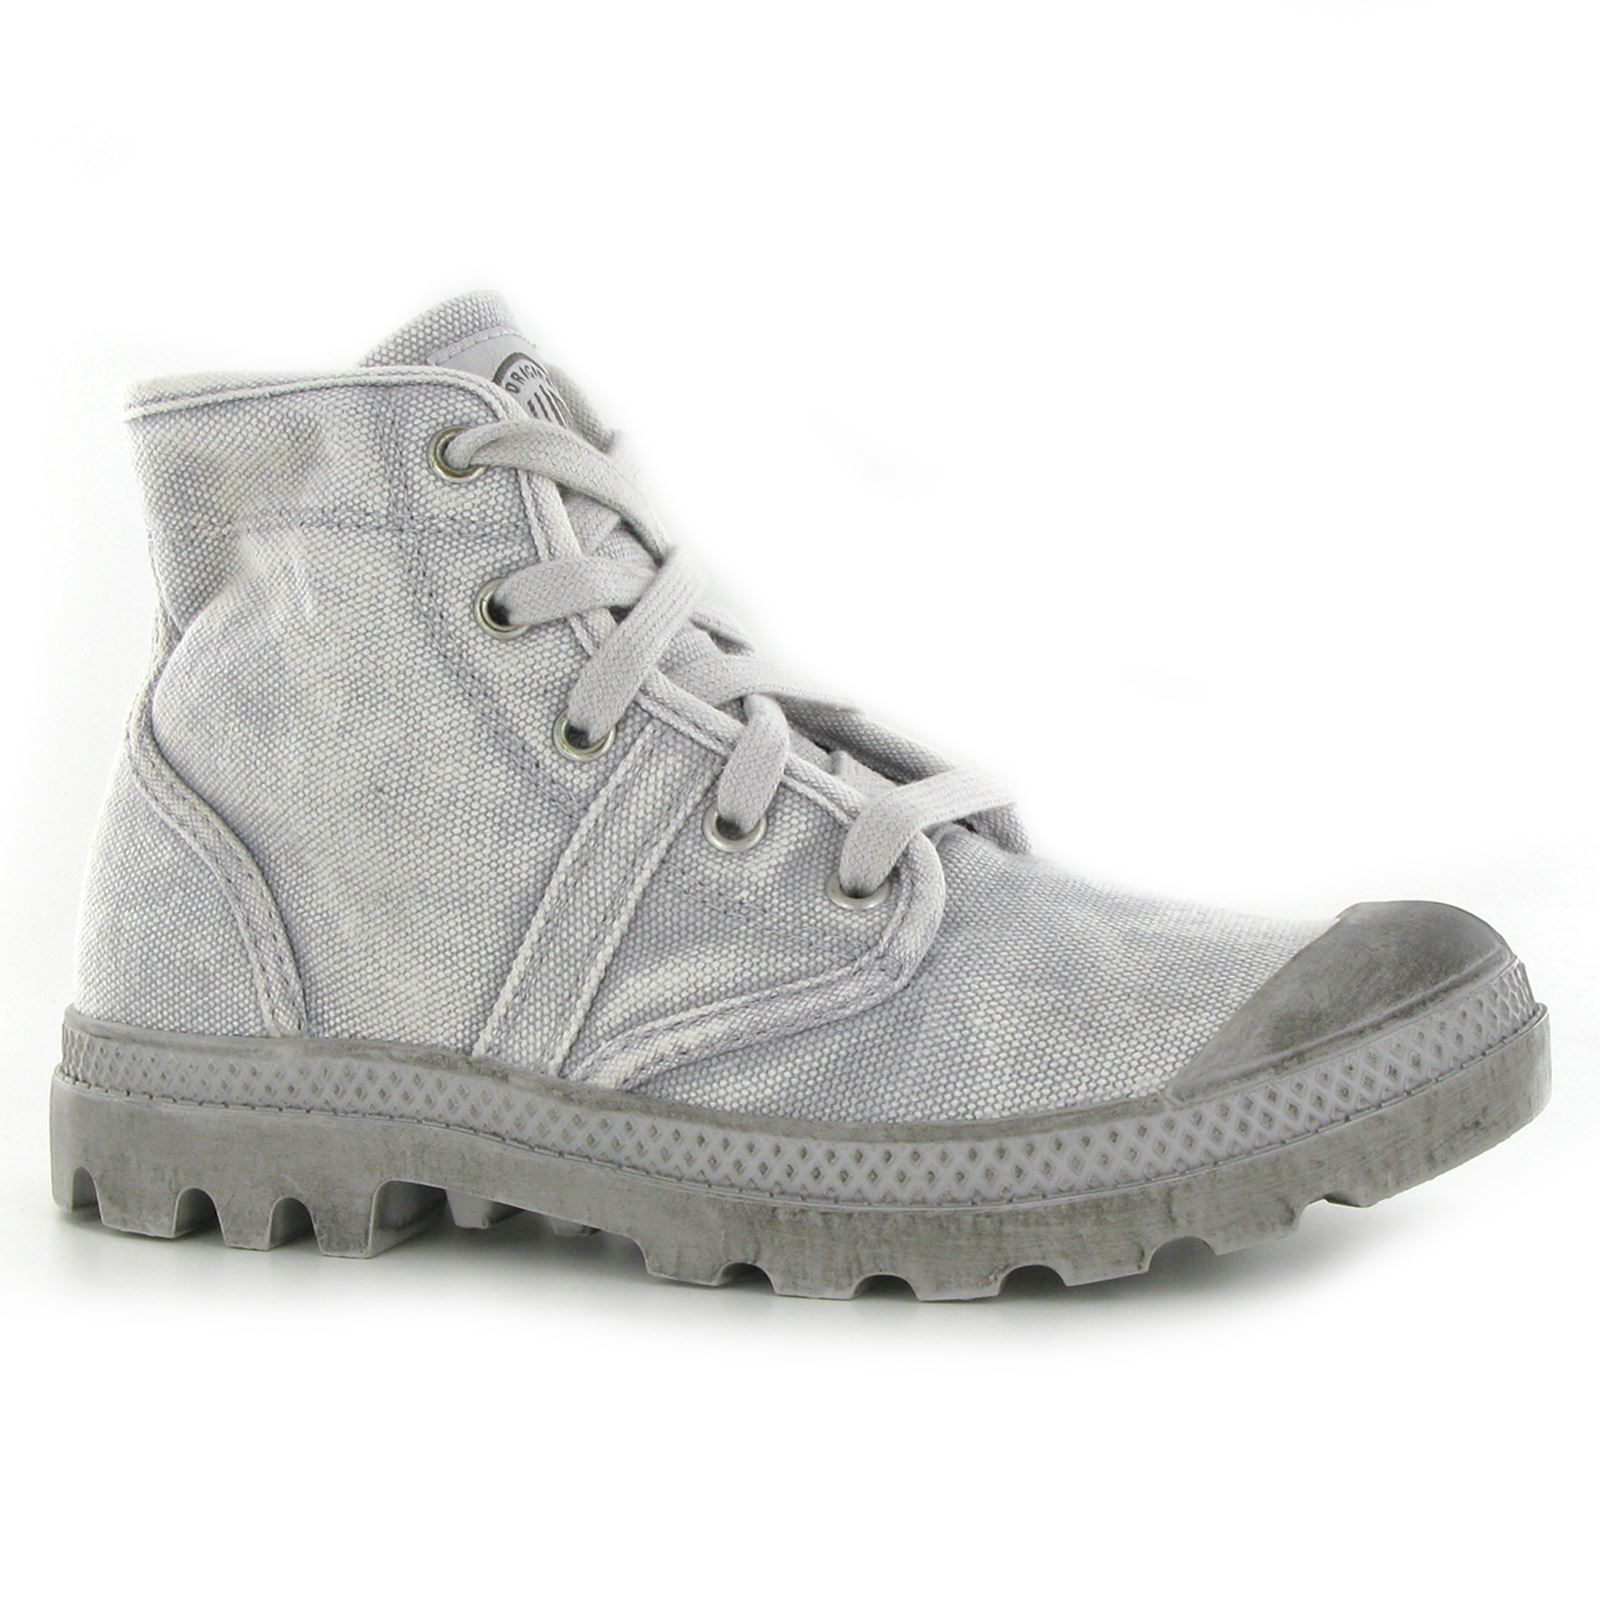 Innovative There Are Also Unique, Foldover Pink Sneakers With Grey Linings For Women, As Well As Plays On The Everpresent Military Theme With Camo, Canvas Boots In Its Lookbook, Palladium Sets Their Models Against A Rough And Rugged Landscape,